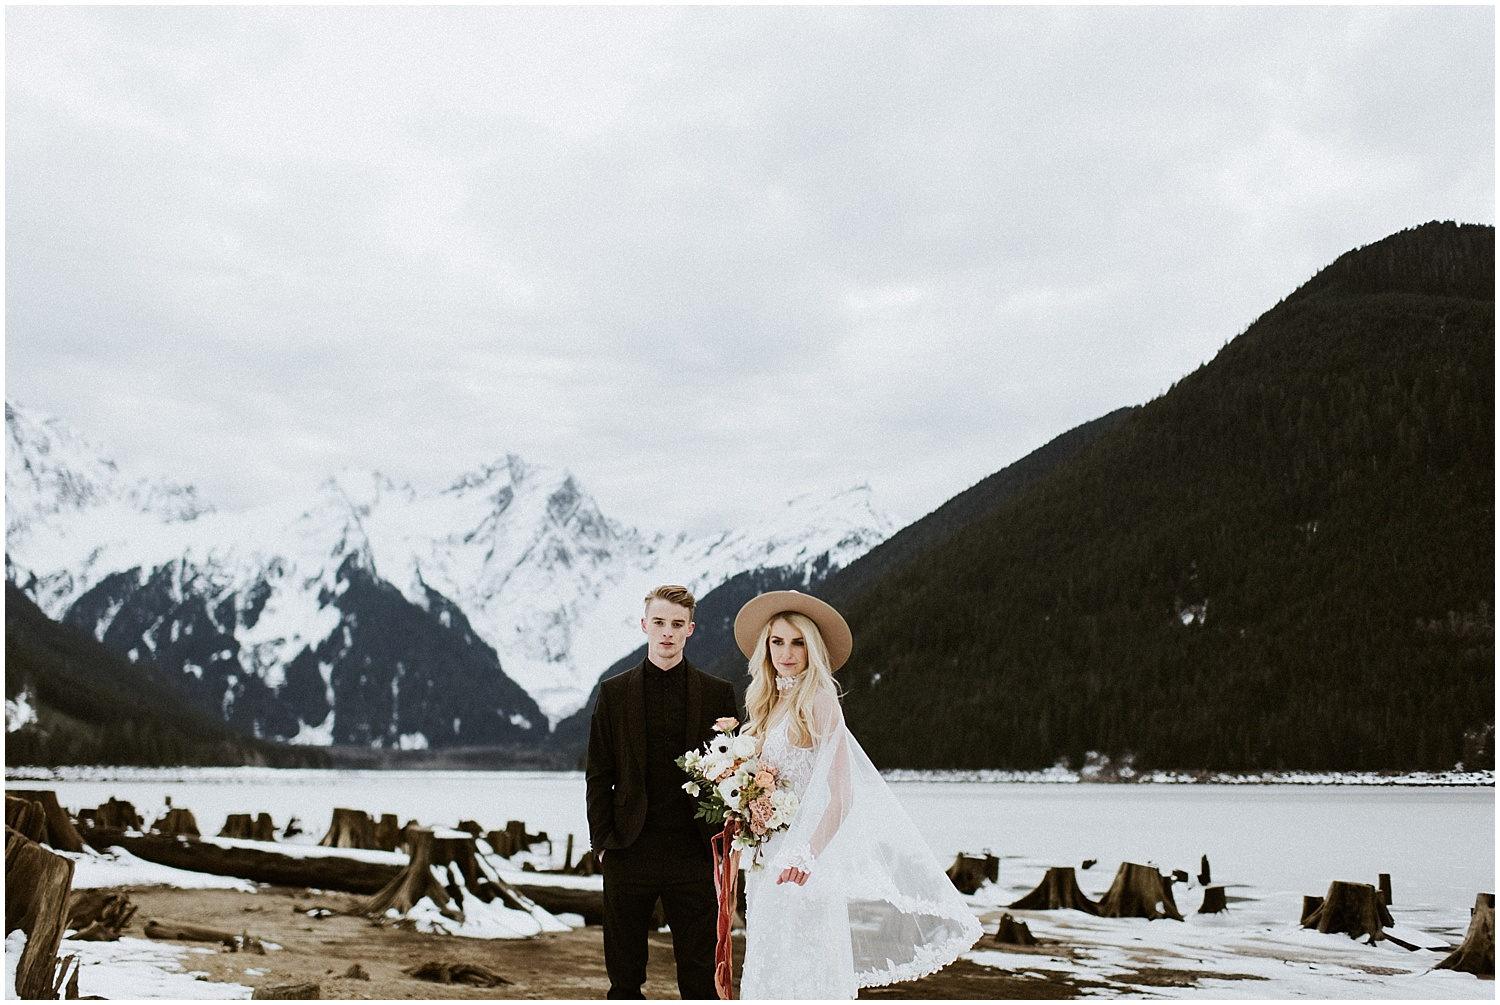 Jones_Lake_wedding_winter_elopement_vancouver_photographer_0268.jpg